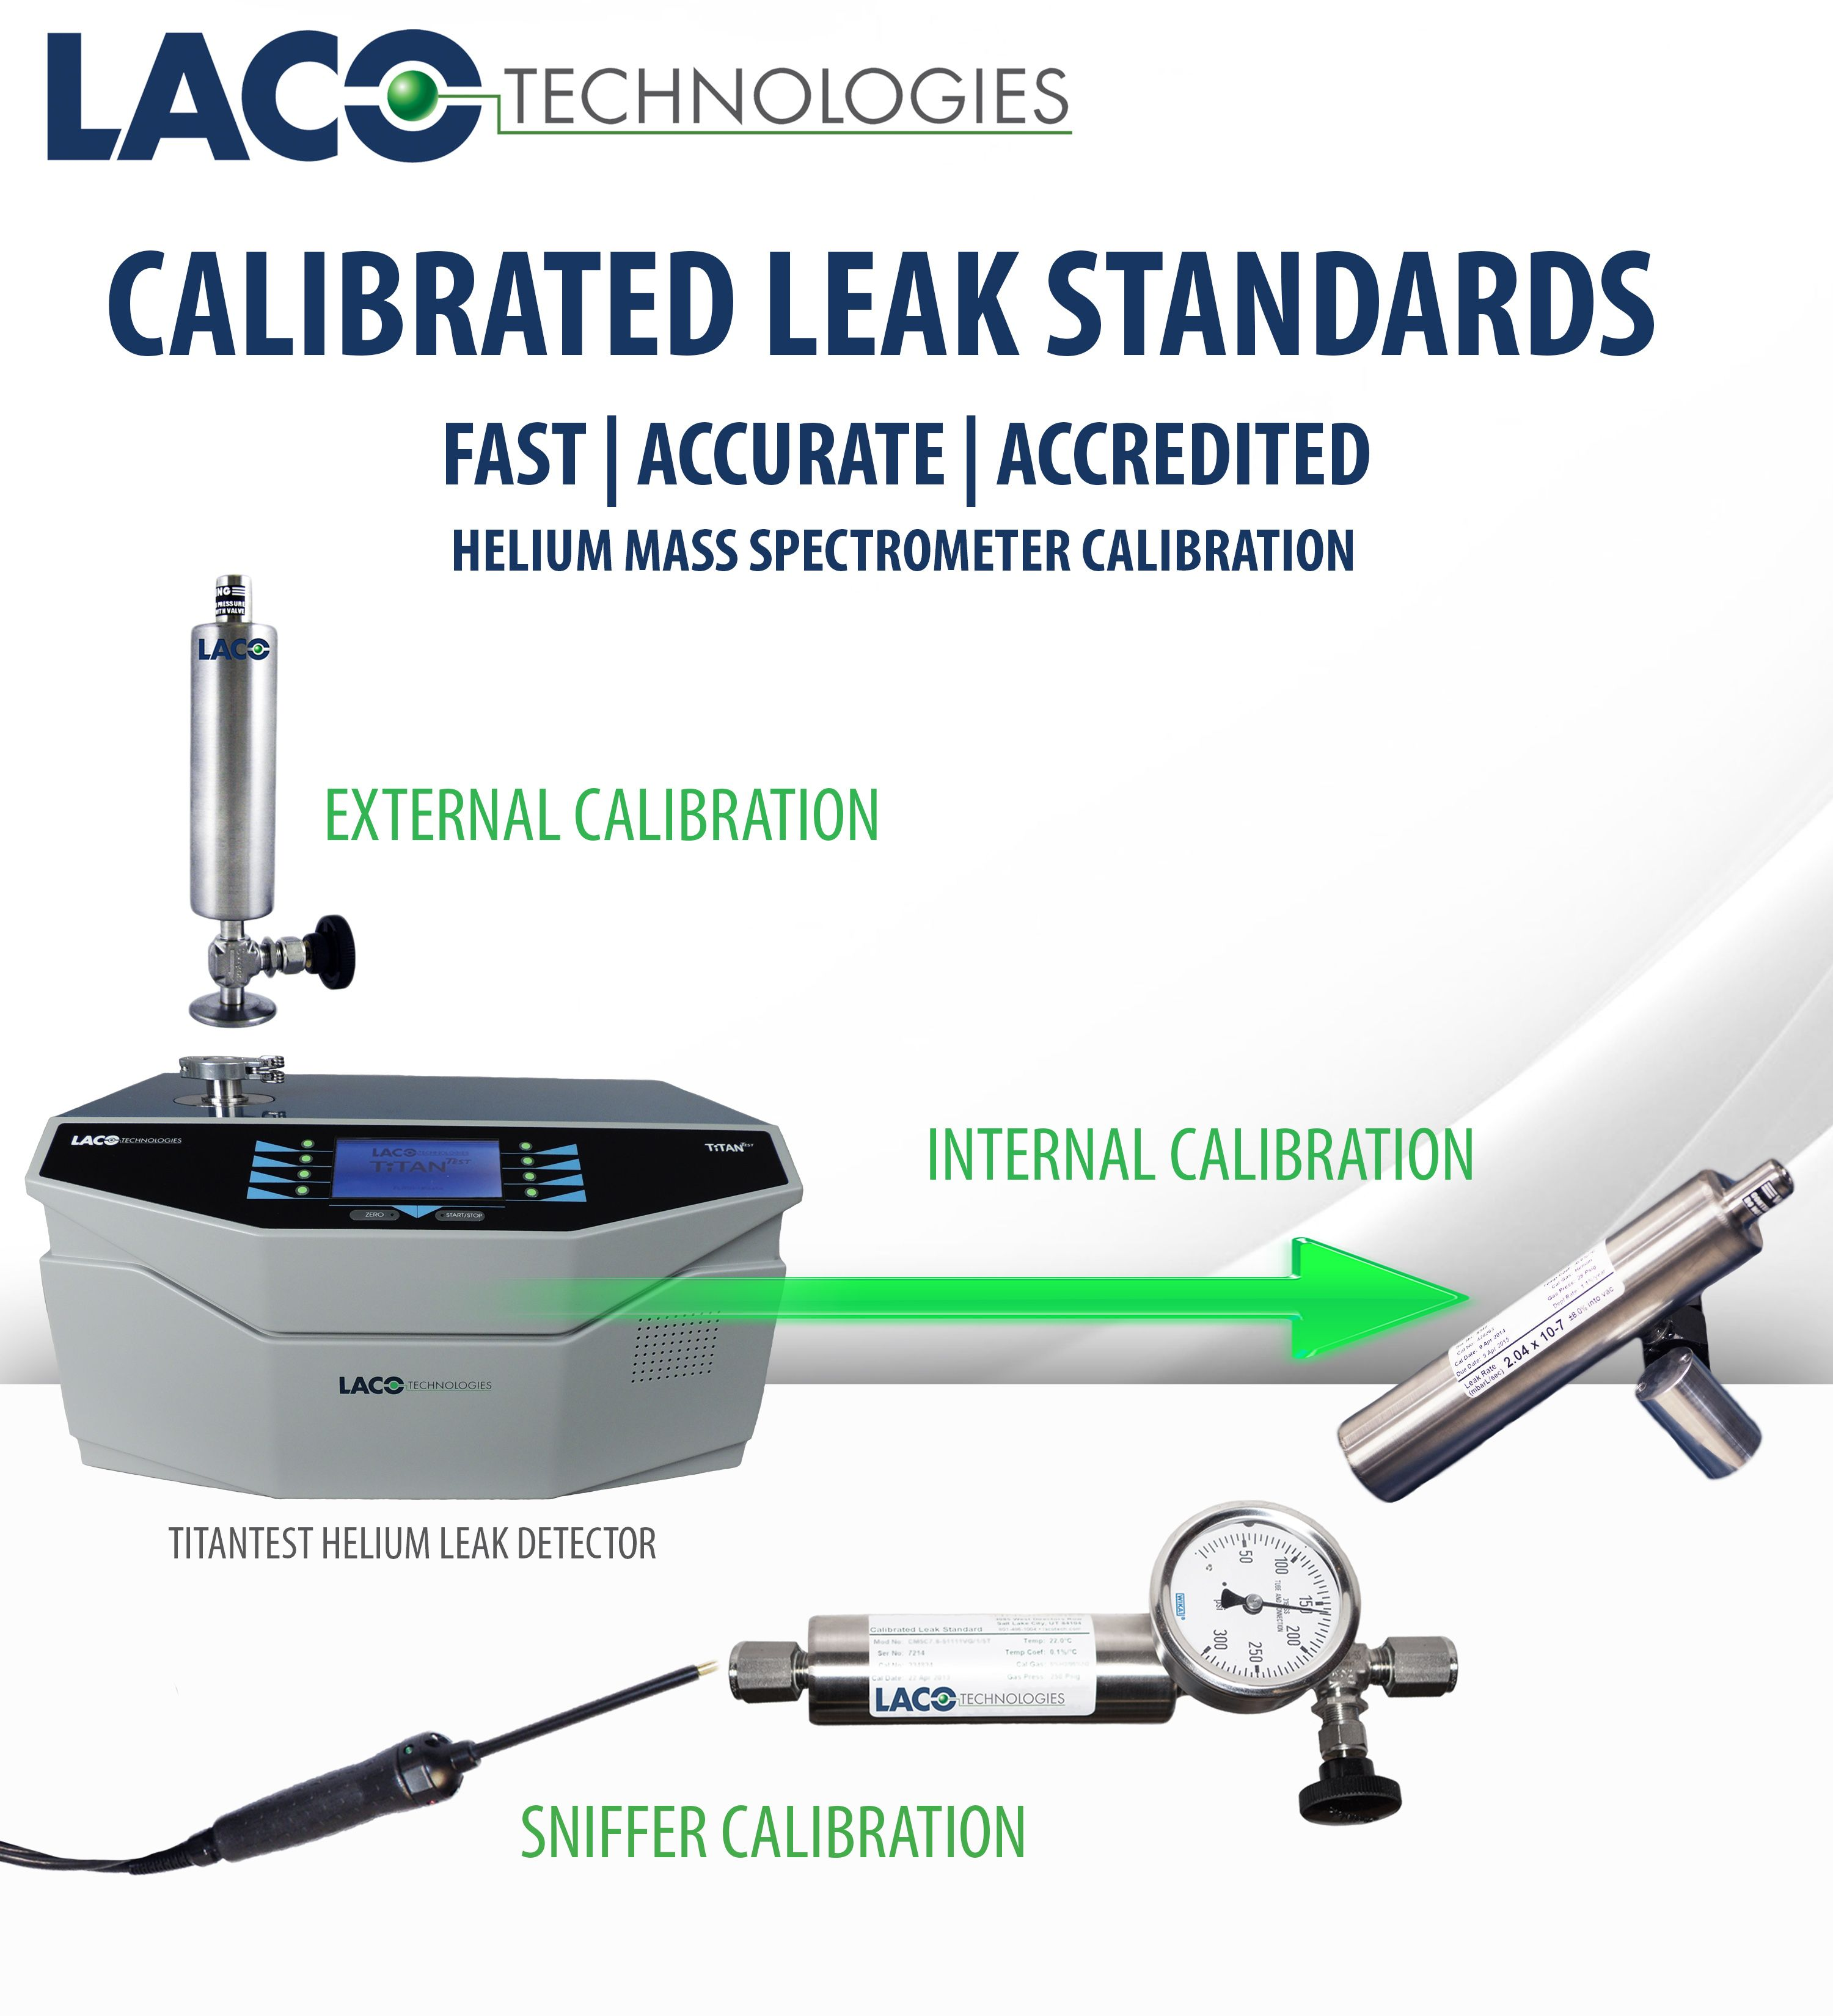 LACO can manufacture leak standards for calibrating all